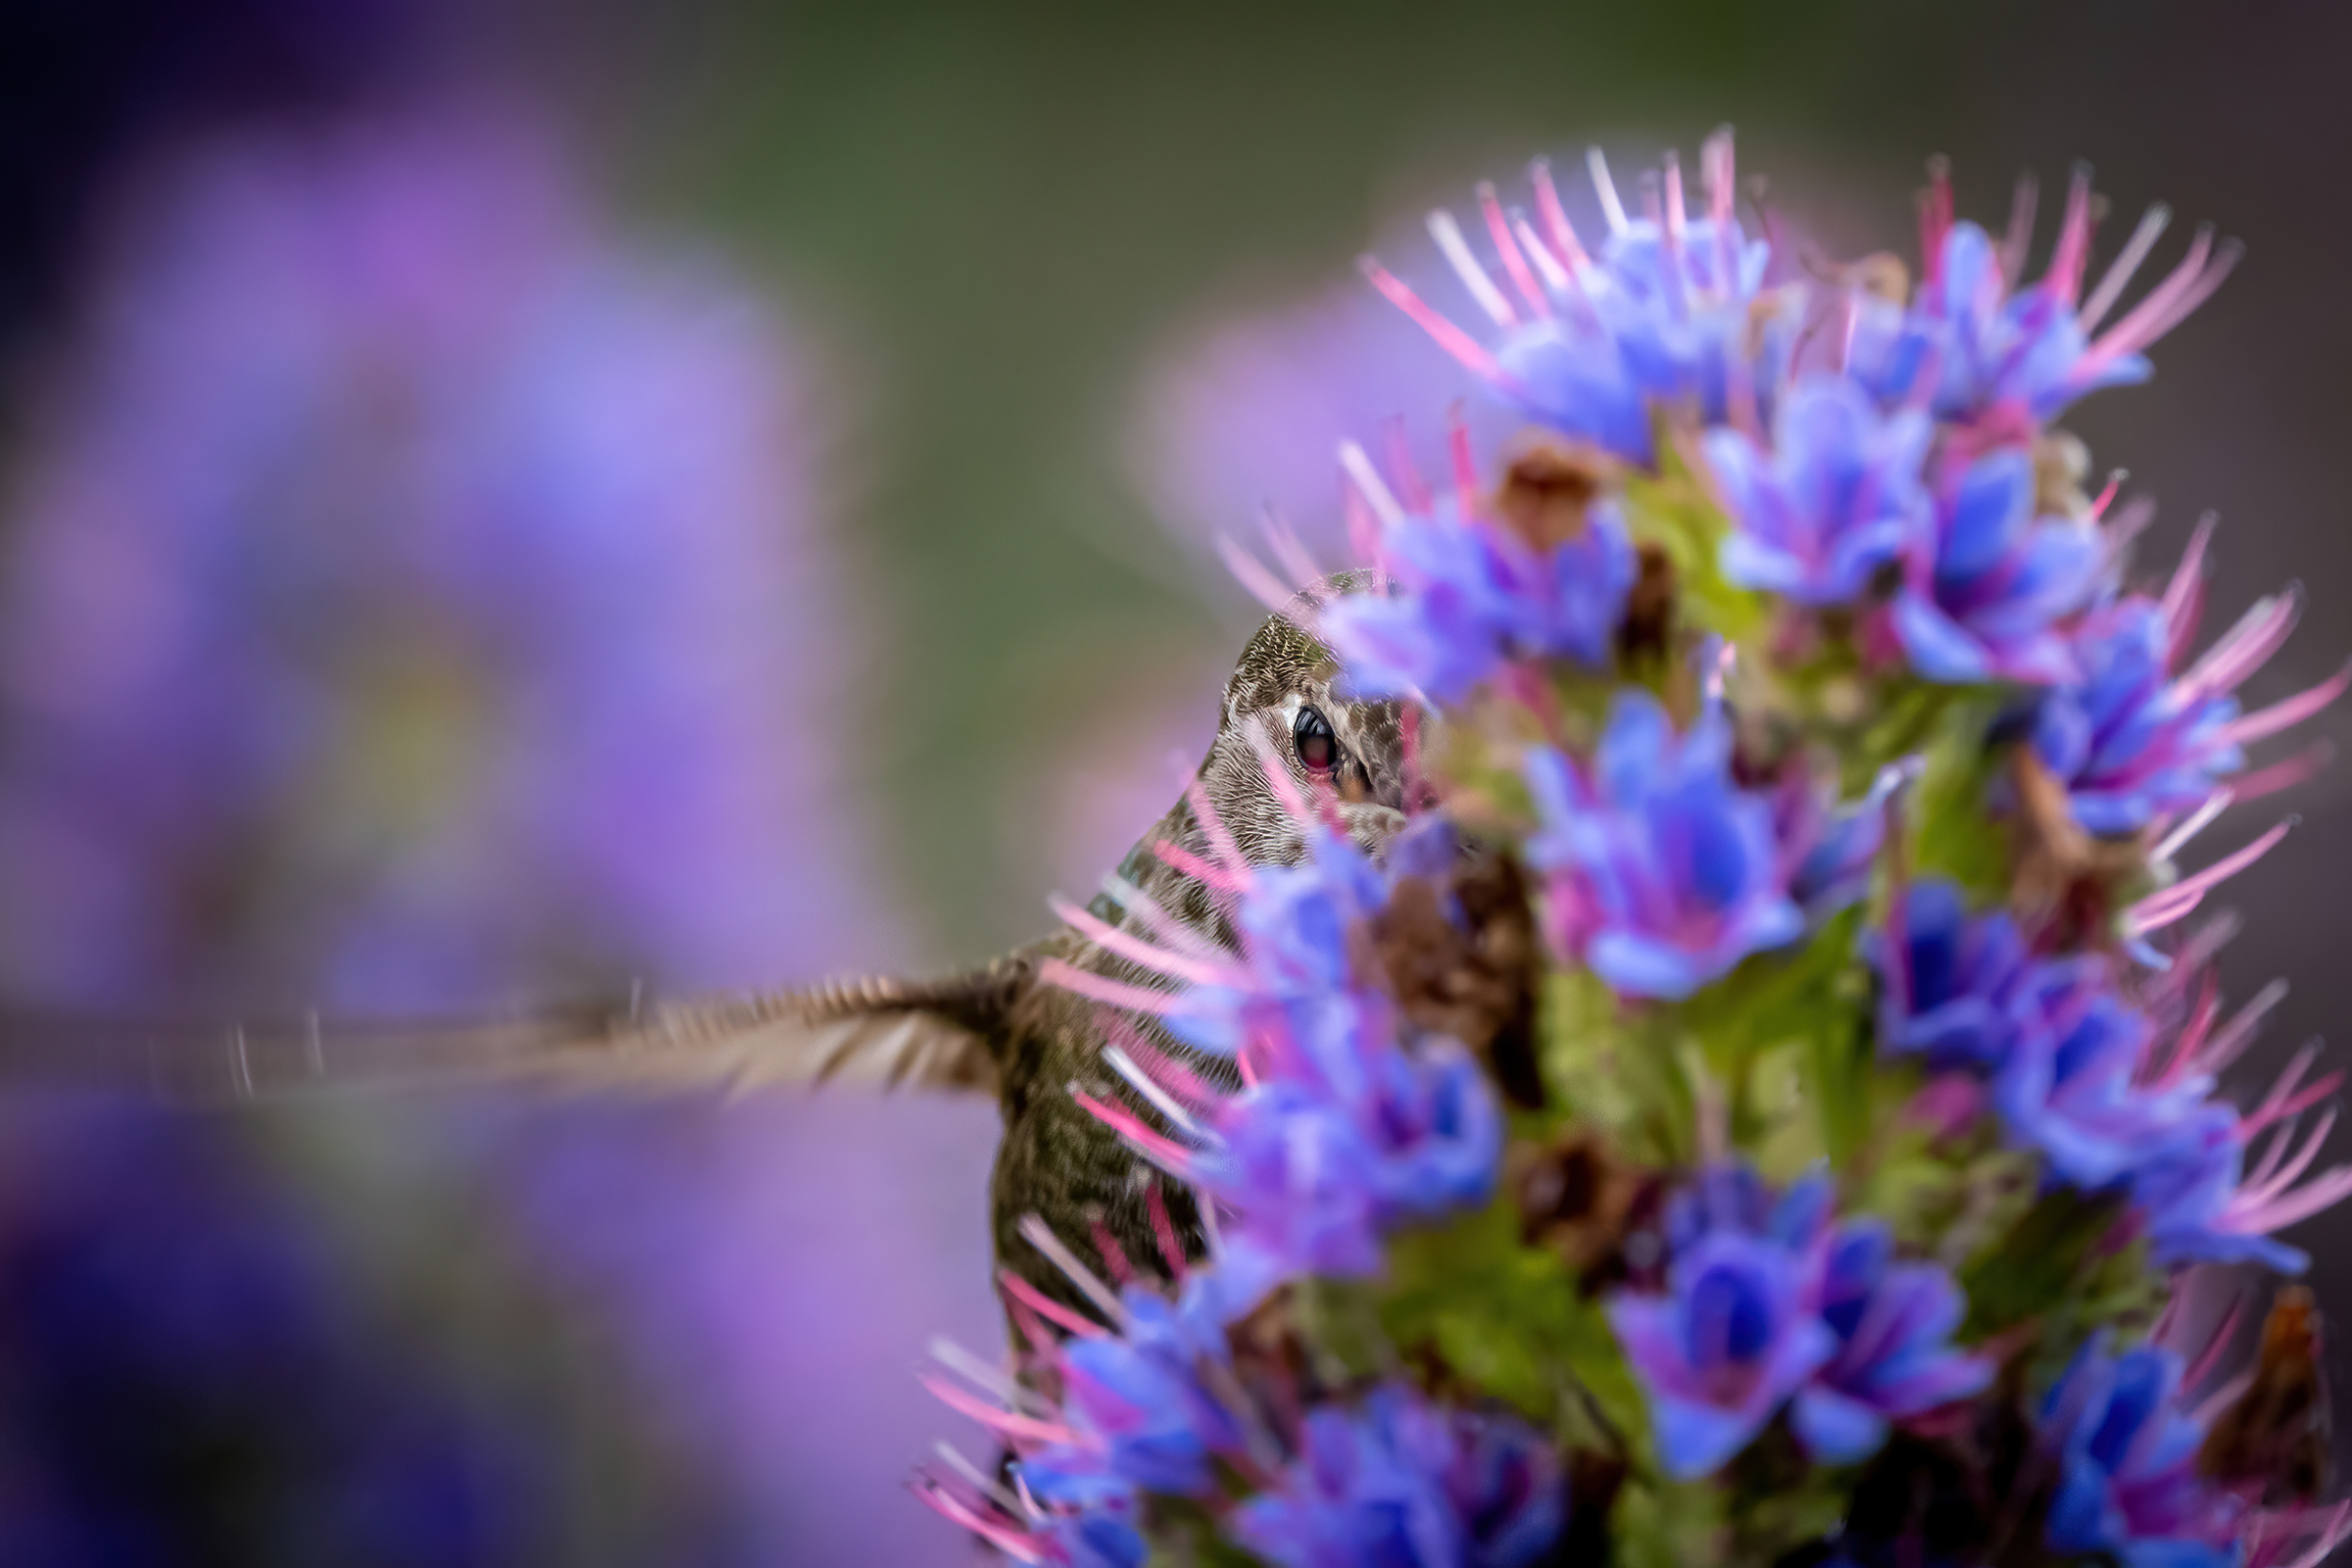 More than a dozen purple blooms on a Pride of Madeira plant obscure all but a blurred wing and one eye of an Anna's Hummingbird. The hummingbird faces the viewer with its eye clearly visible between two flowers, appearing to be making eye contact with the photographer.